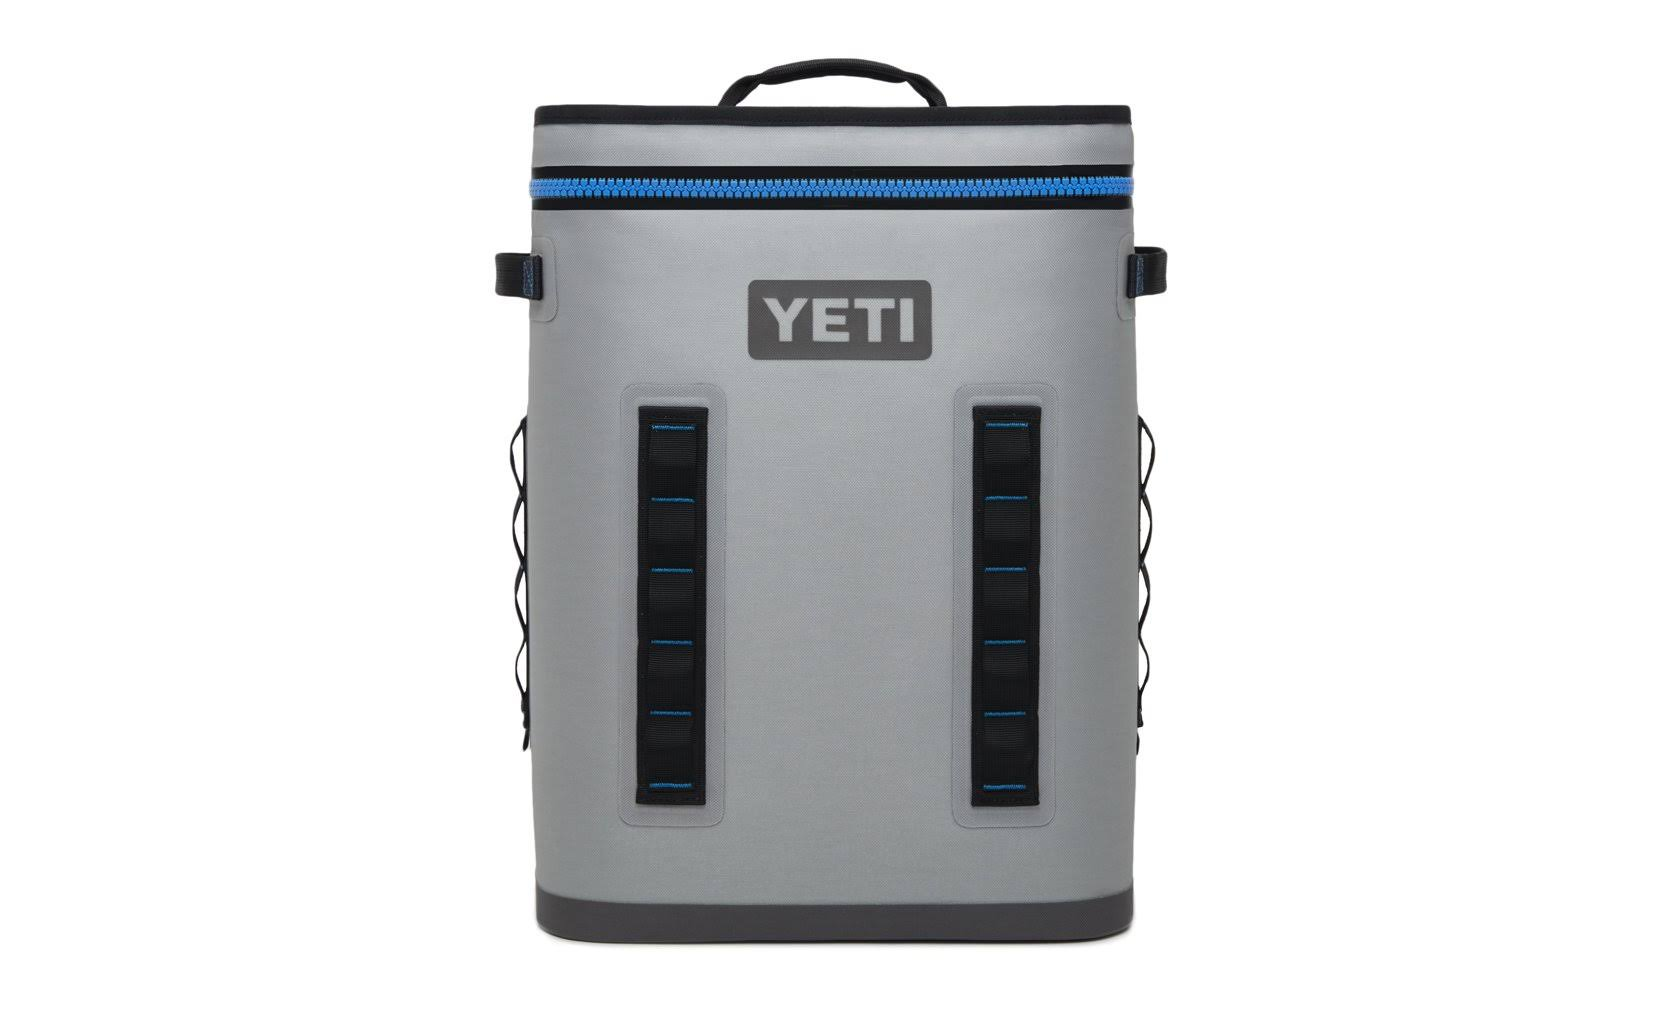 Yeti 18060130007 Hopper BackFlip Cooler Backpack - Fog Gray, 24L